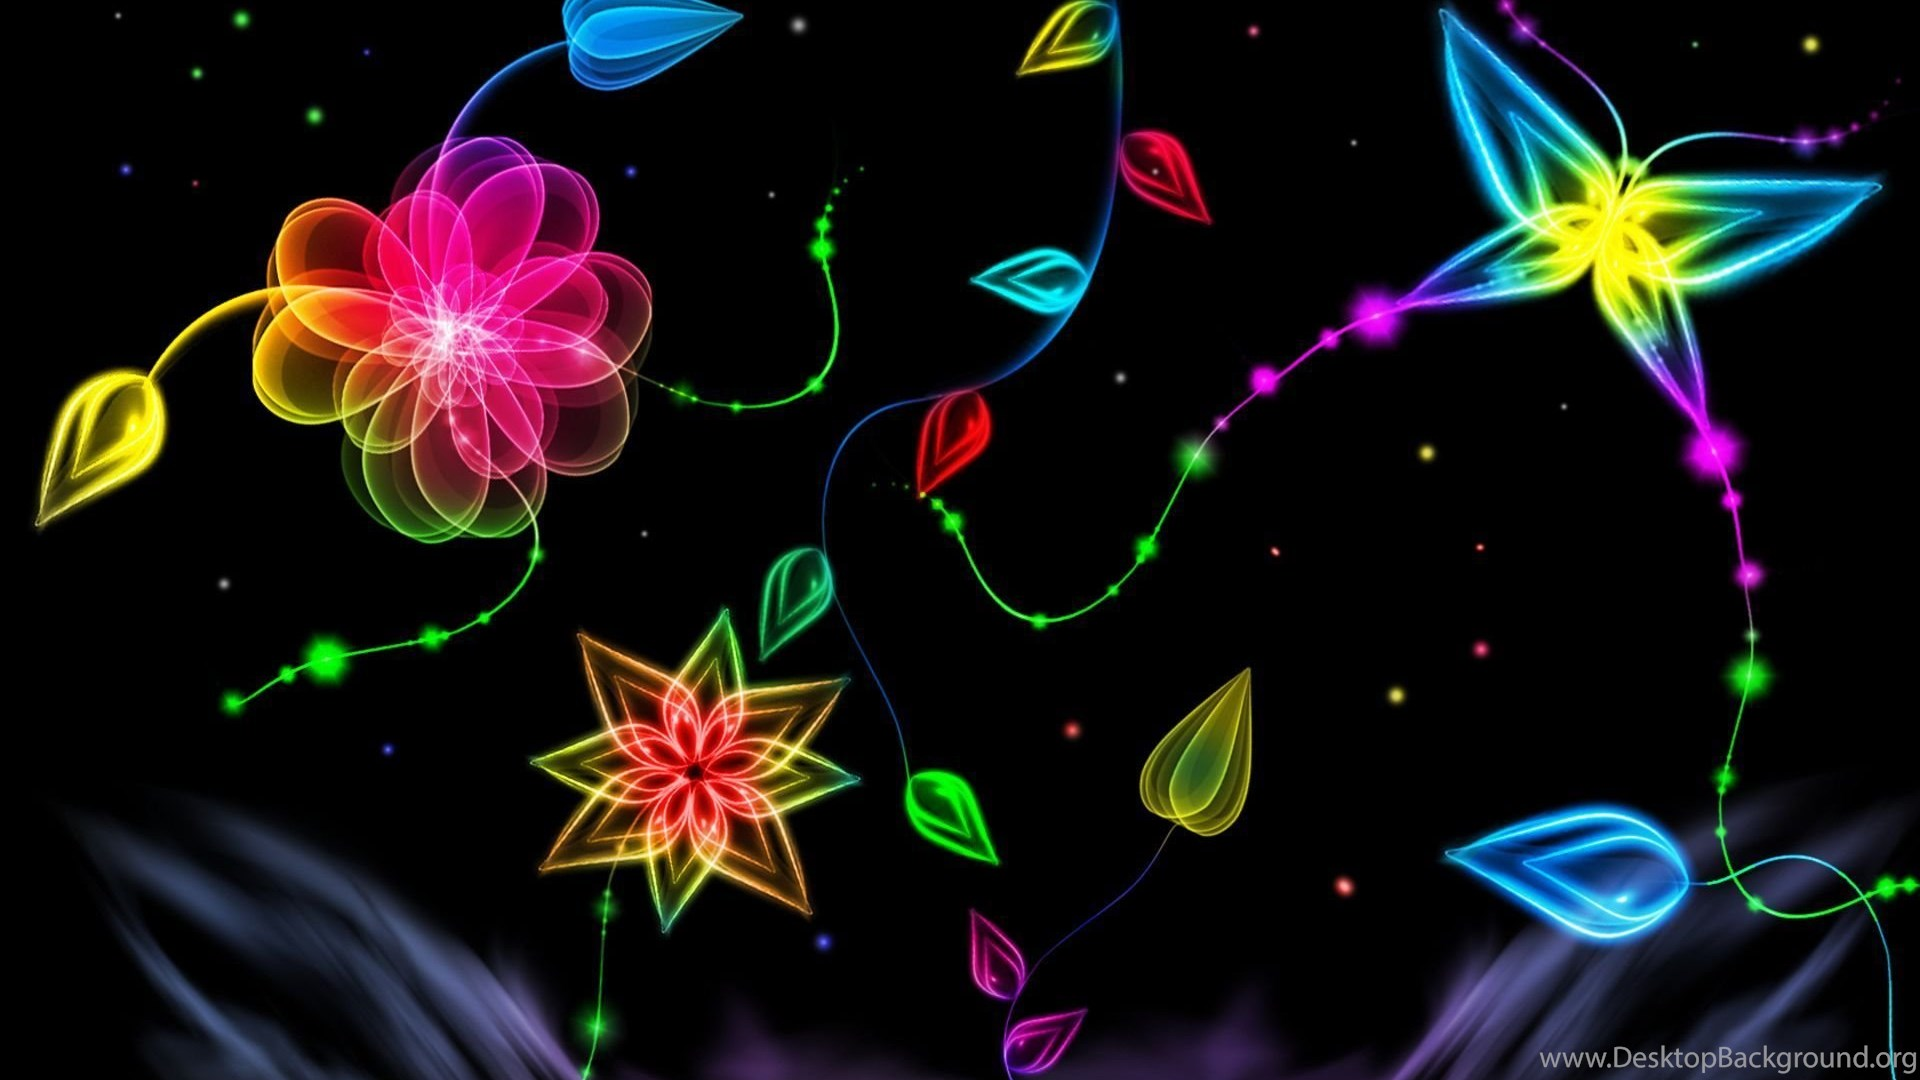 Colorful 3d Abstract Wallpapers Invitation Templates Desktop ...